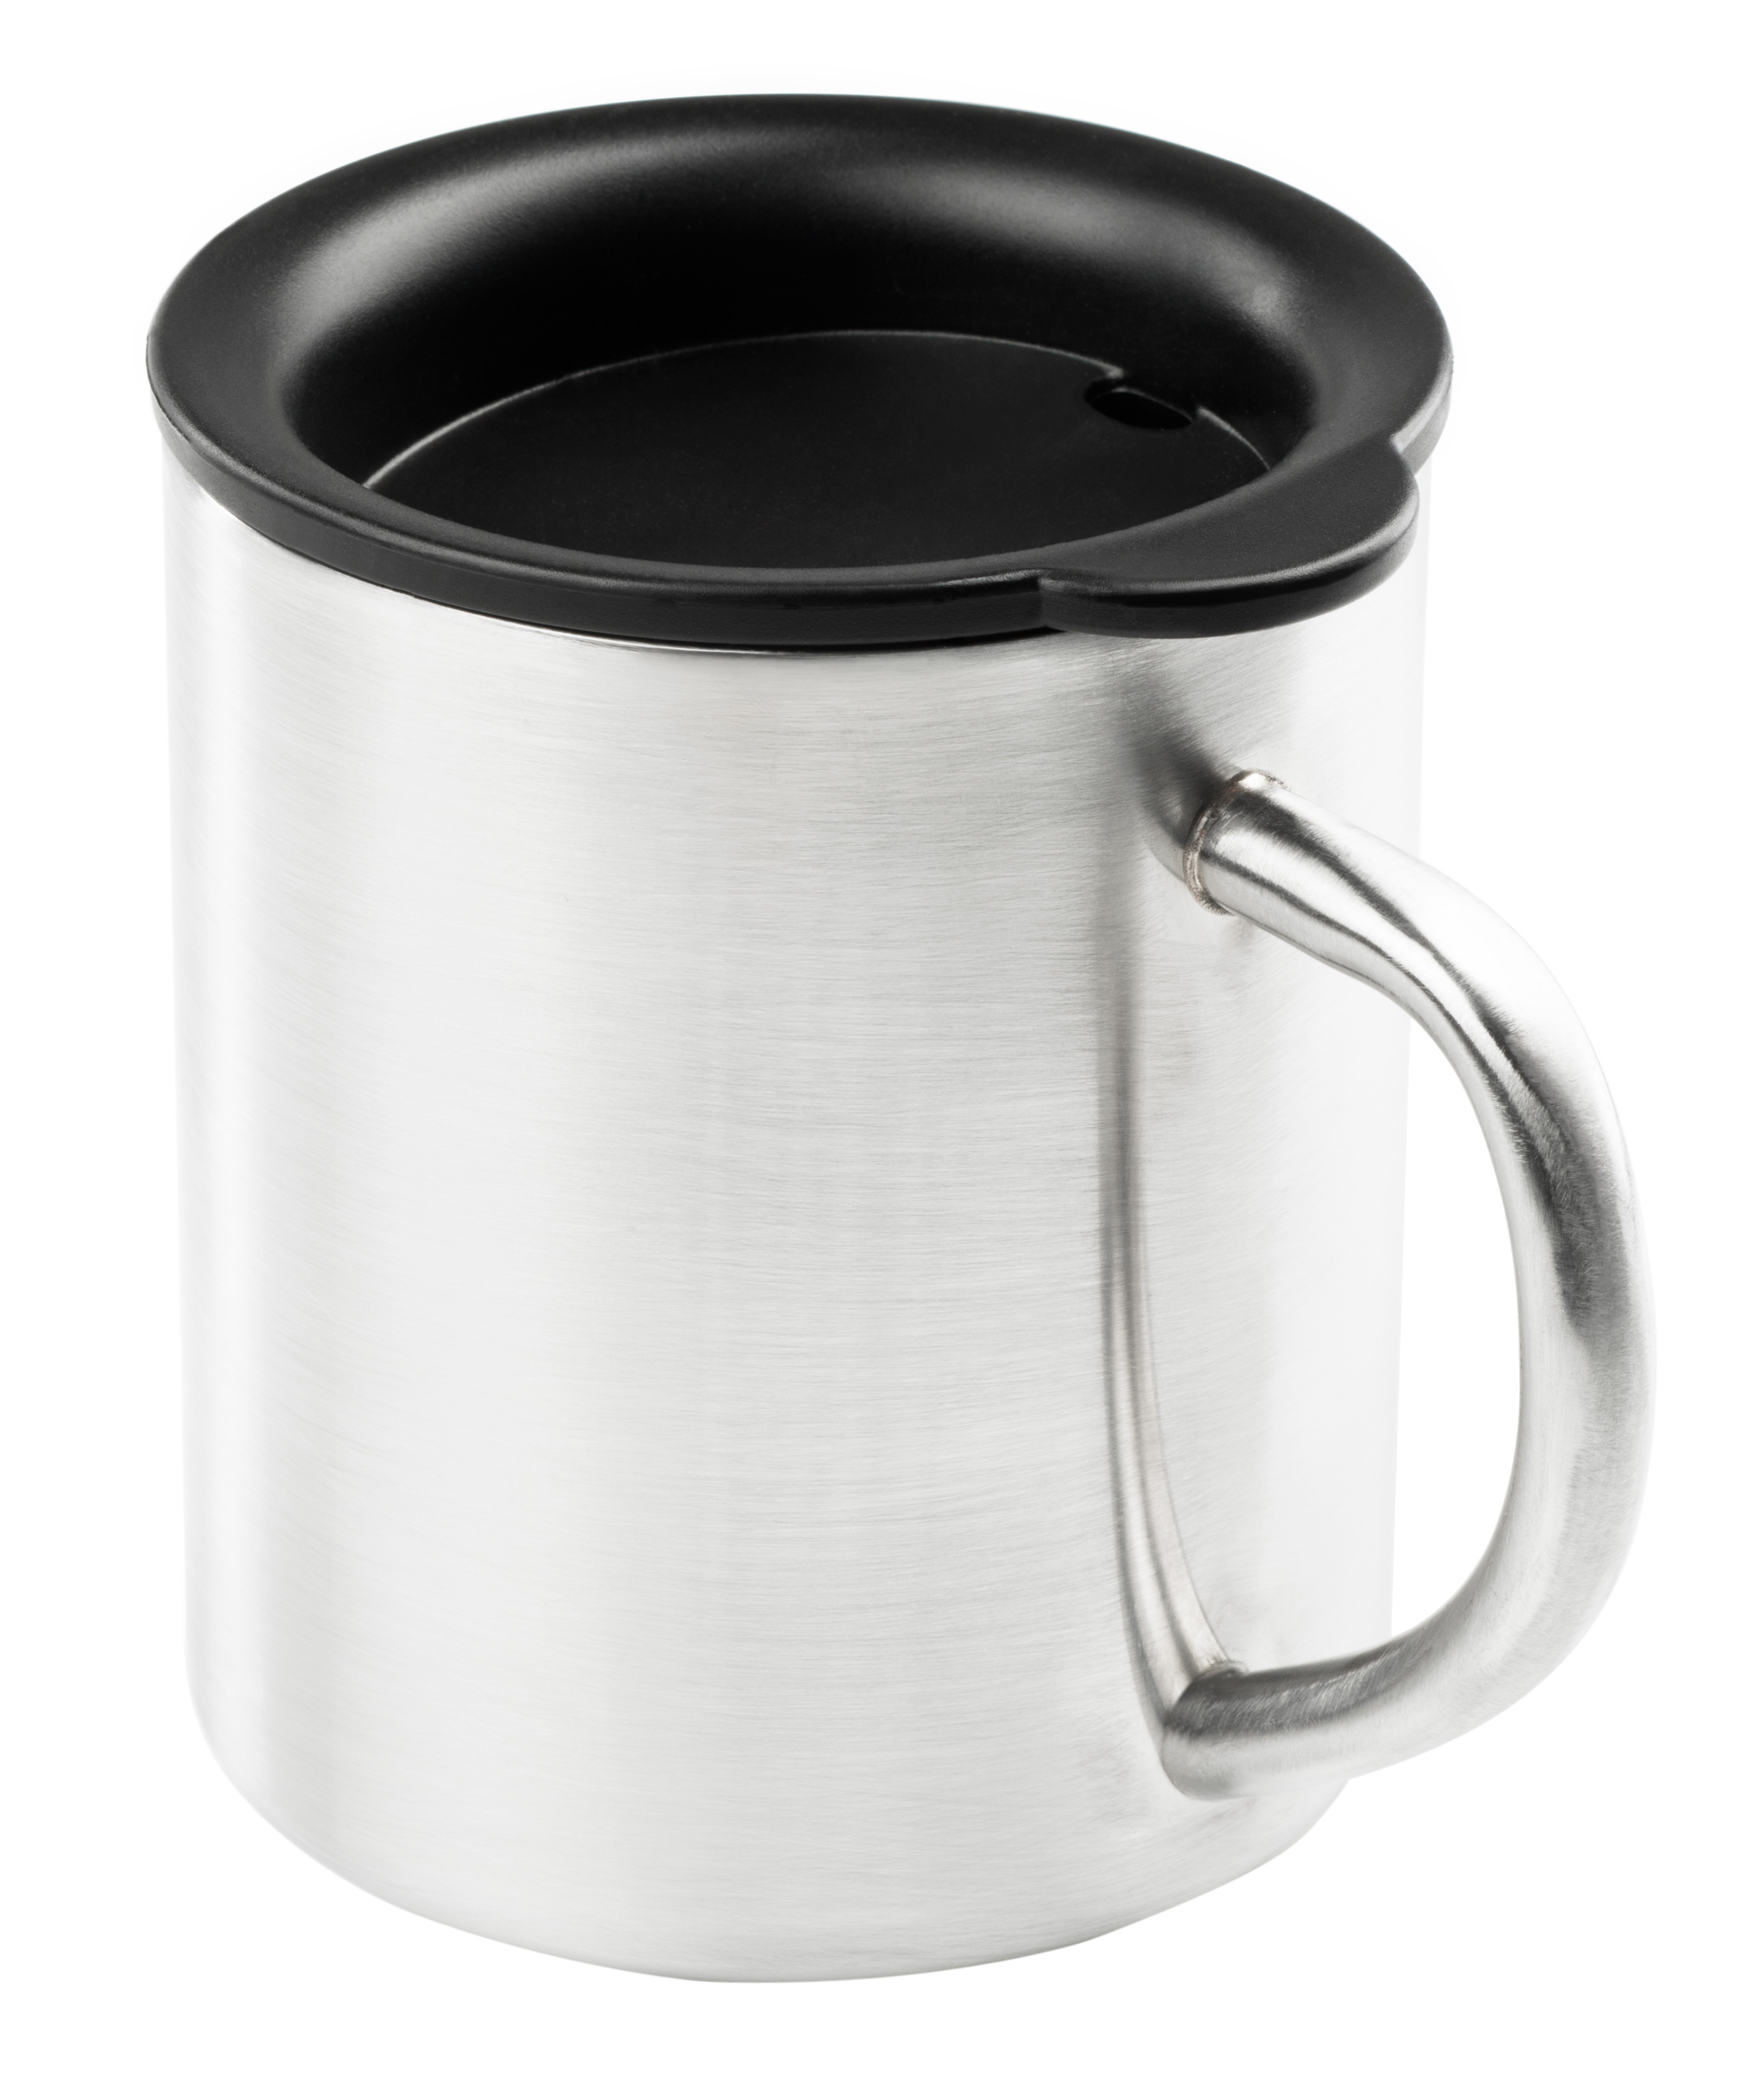 GSI Glacier Stainless Camp Cup 300ml